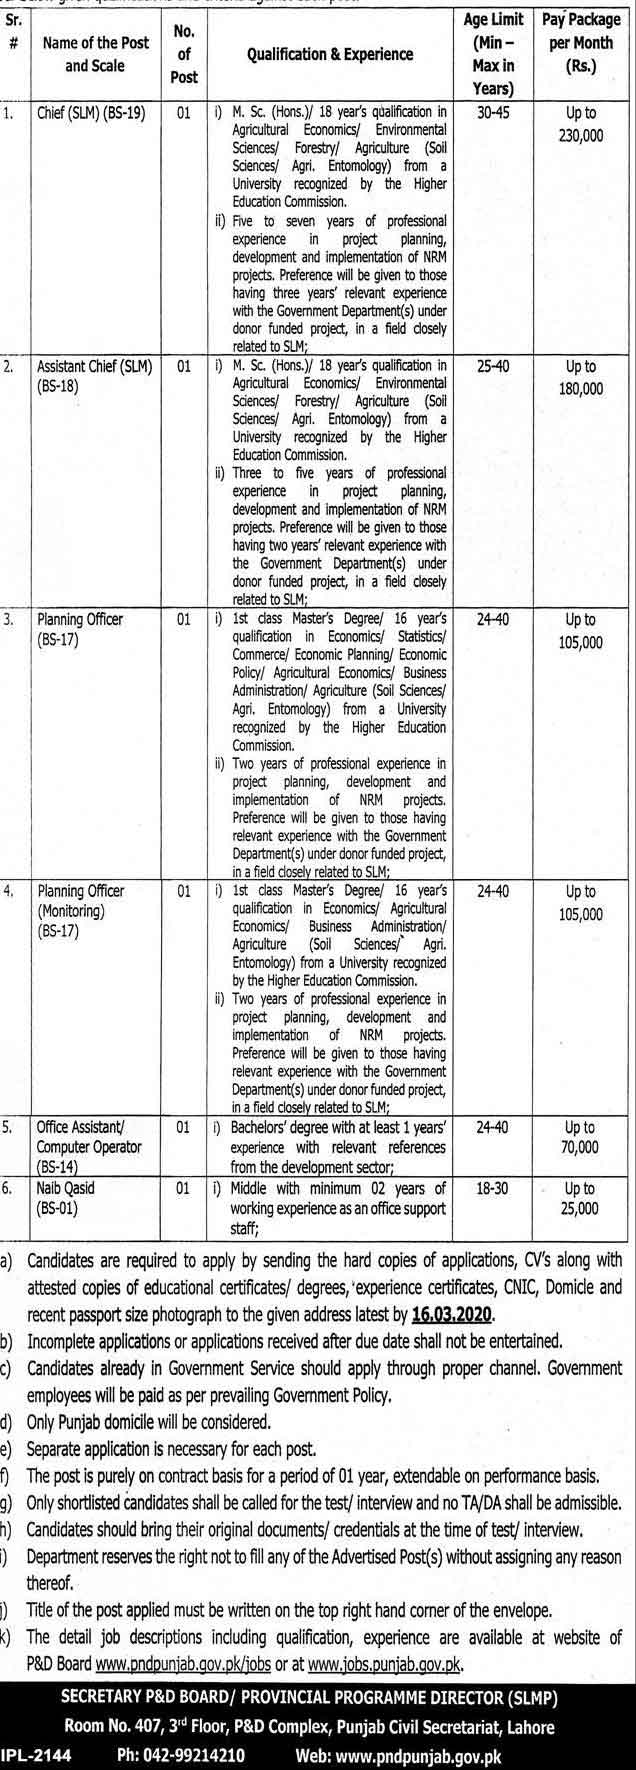 punjab-government-Jobs-2020-Salary-Package